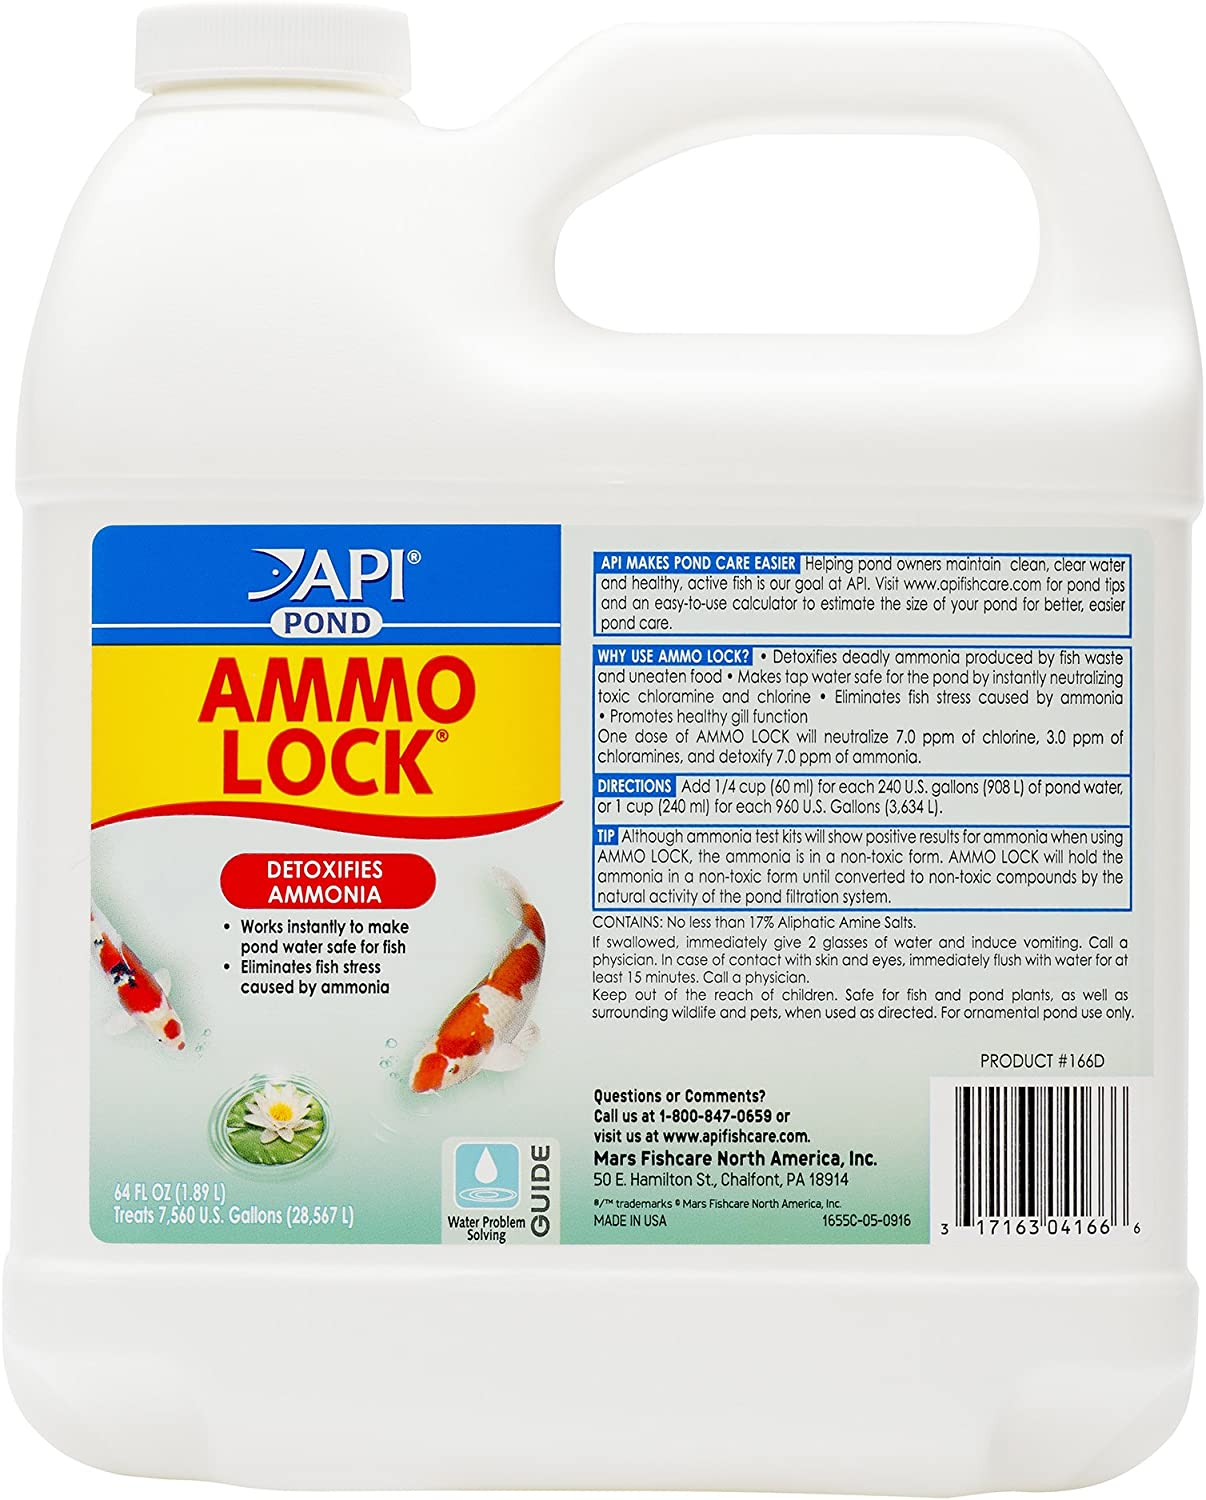 API Pond Ammo-Lock Ammonia detoxifier, Detoxifies Ammonia in Pond Water and tap Water with Natural Active Ingredients, Use Every Two Days Until Ammonia is not Detected